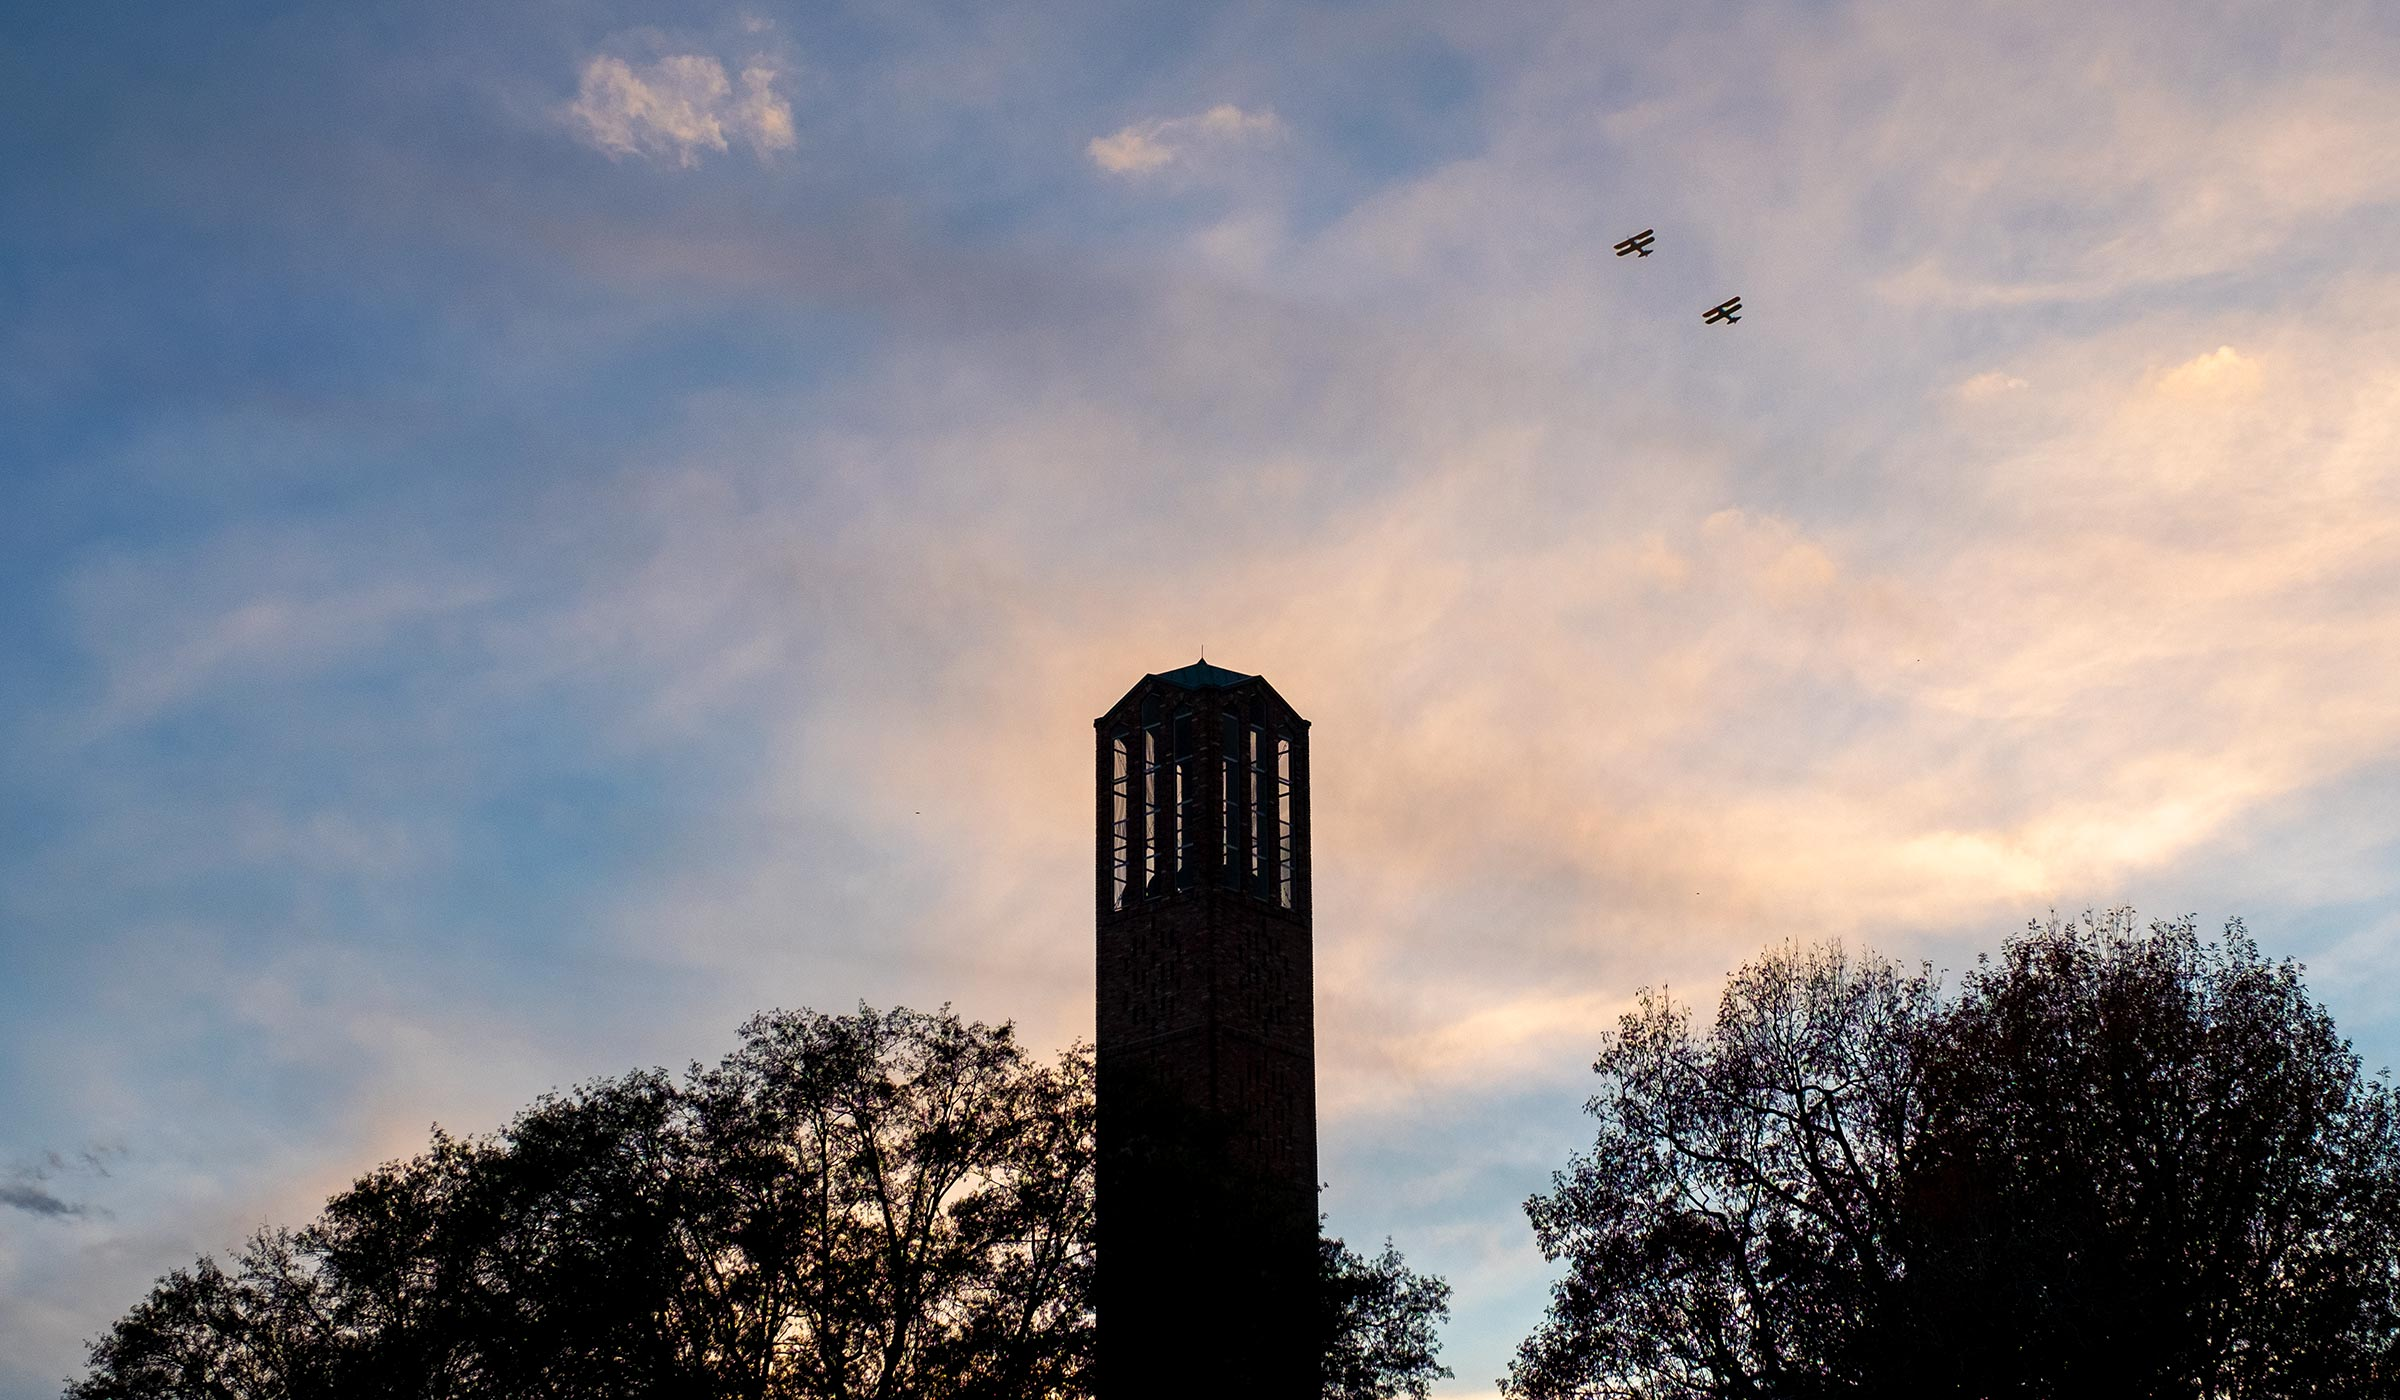 Chapel tower with pair of biplanes against the sunset clouds.